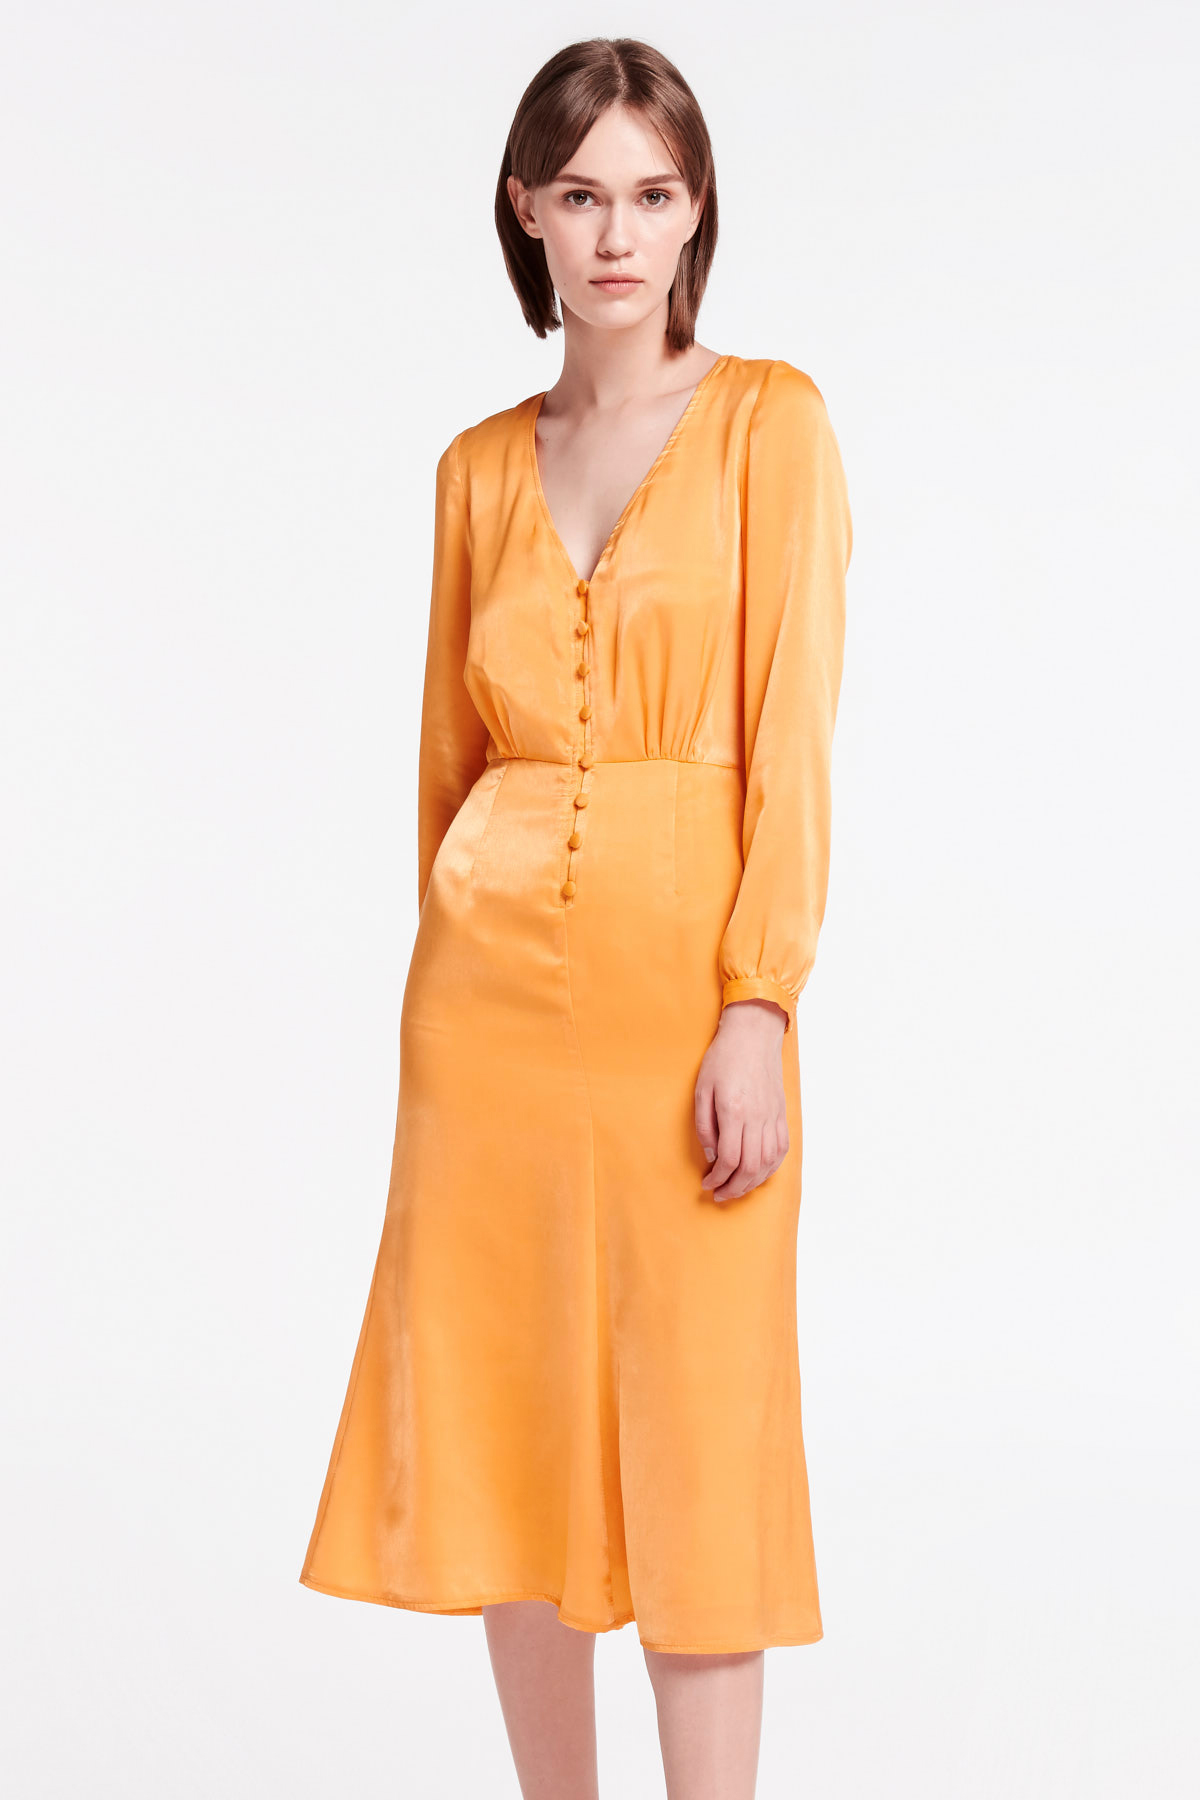 fa3c339c5a2c Yellow midi dress with buttons MustHave ❤ Женские Dresses Sundresses